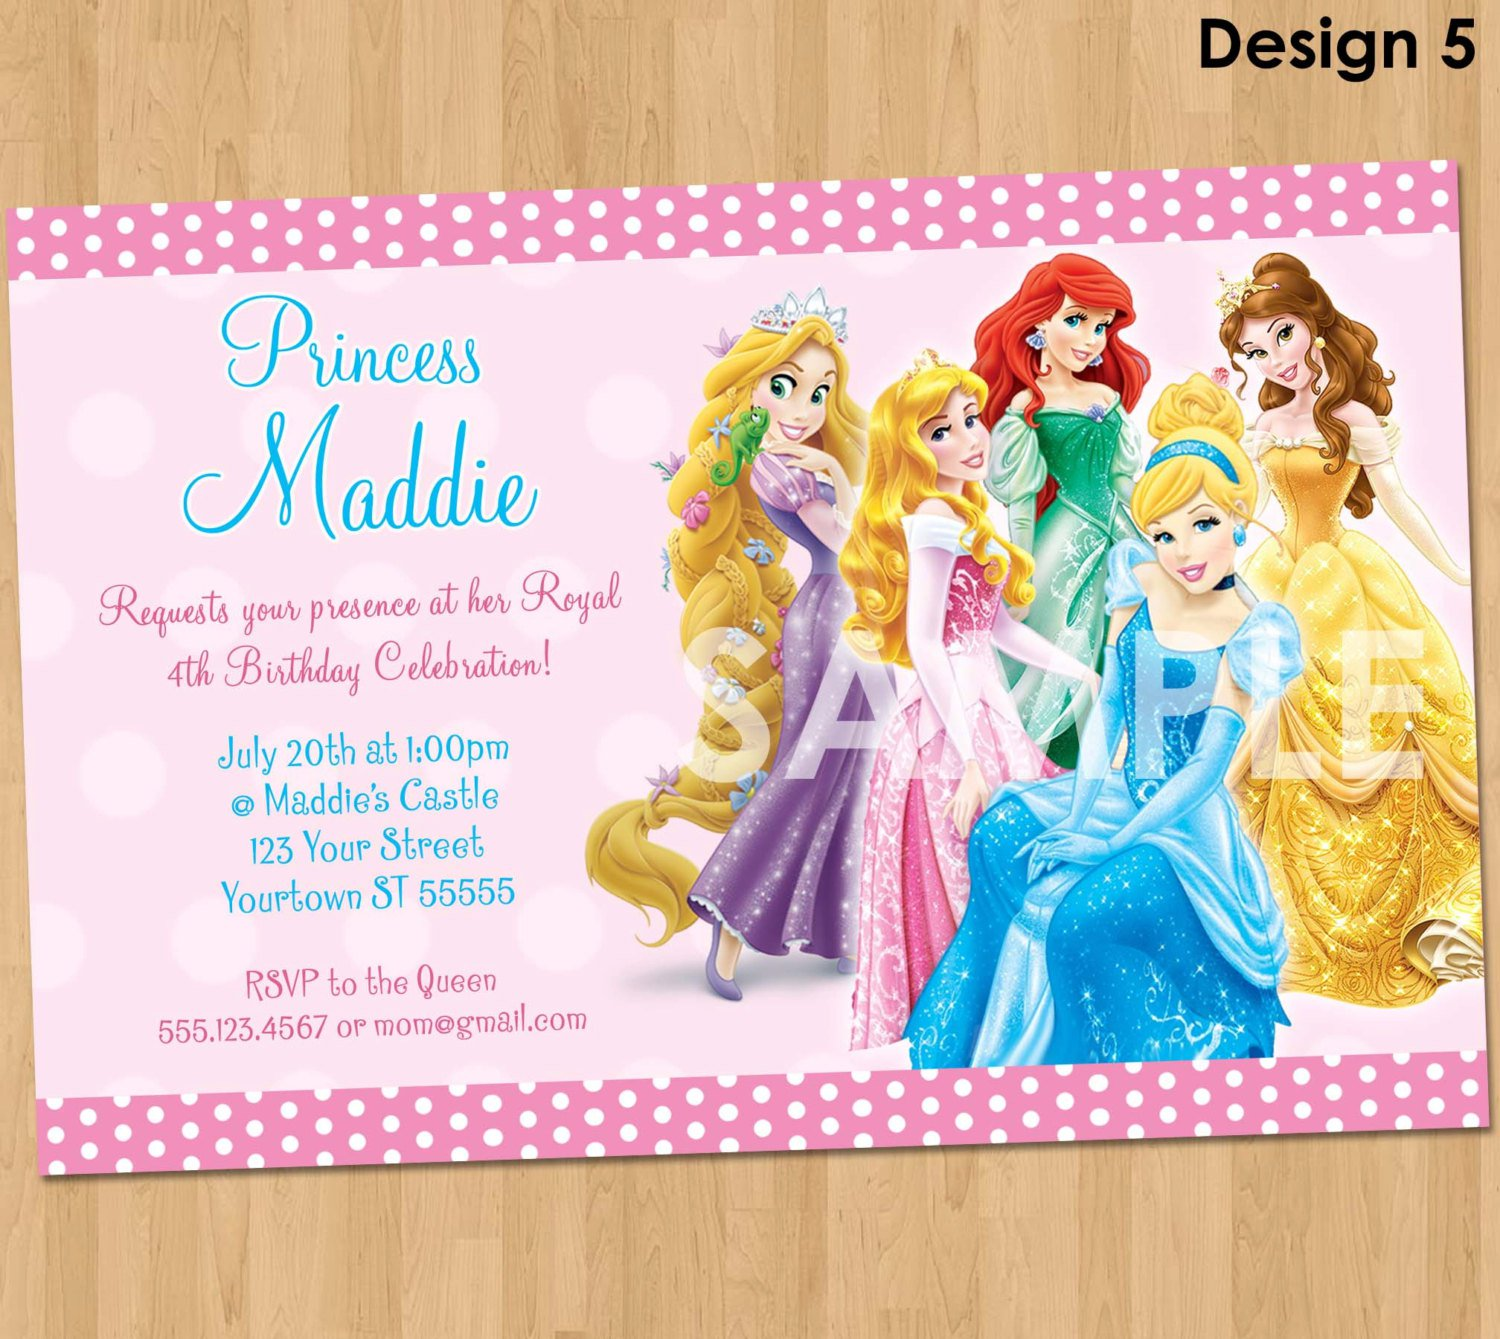 Disney Princess Invitation Maker Free